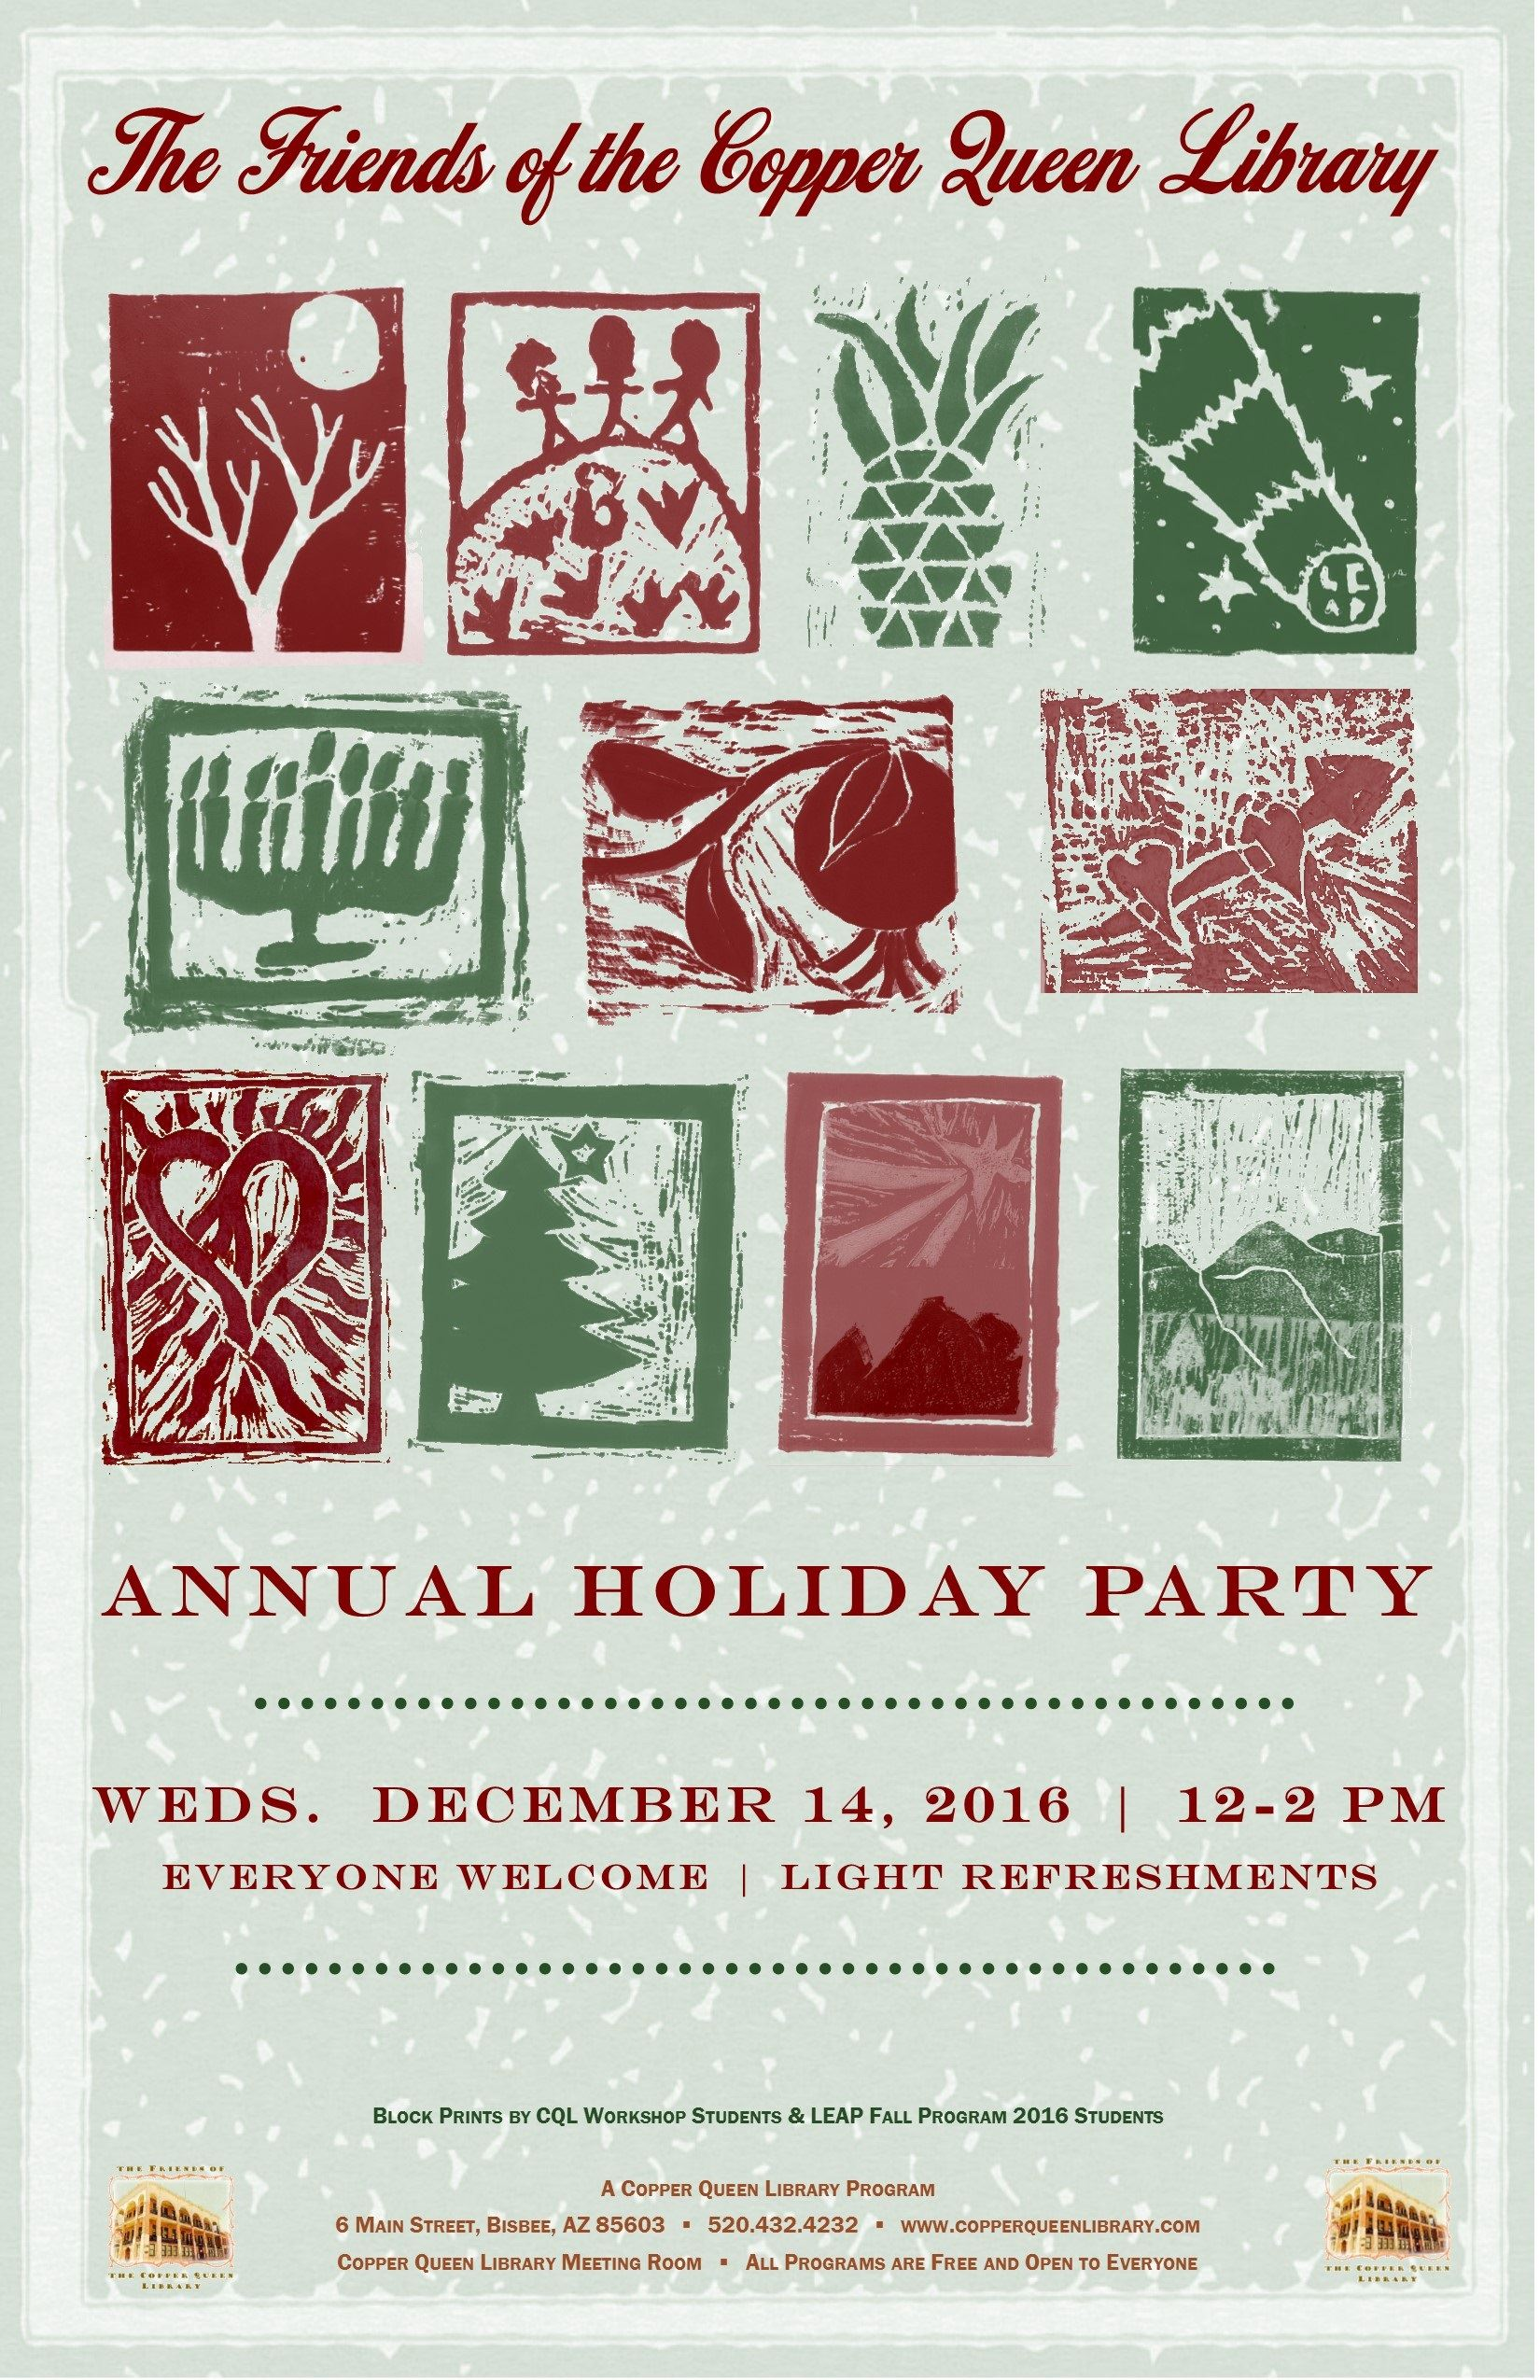 ANNUAL FRIENDSHOLIDAY PARTY DEC 2016